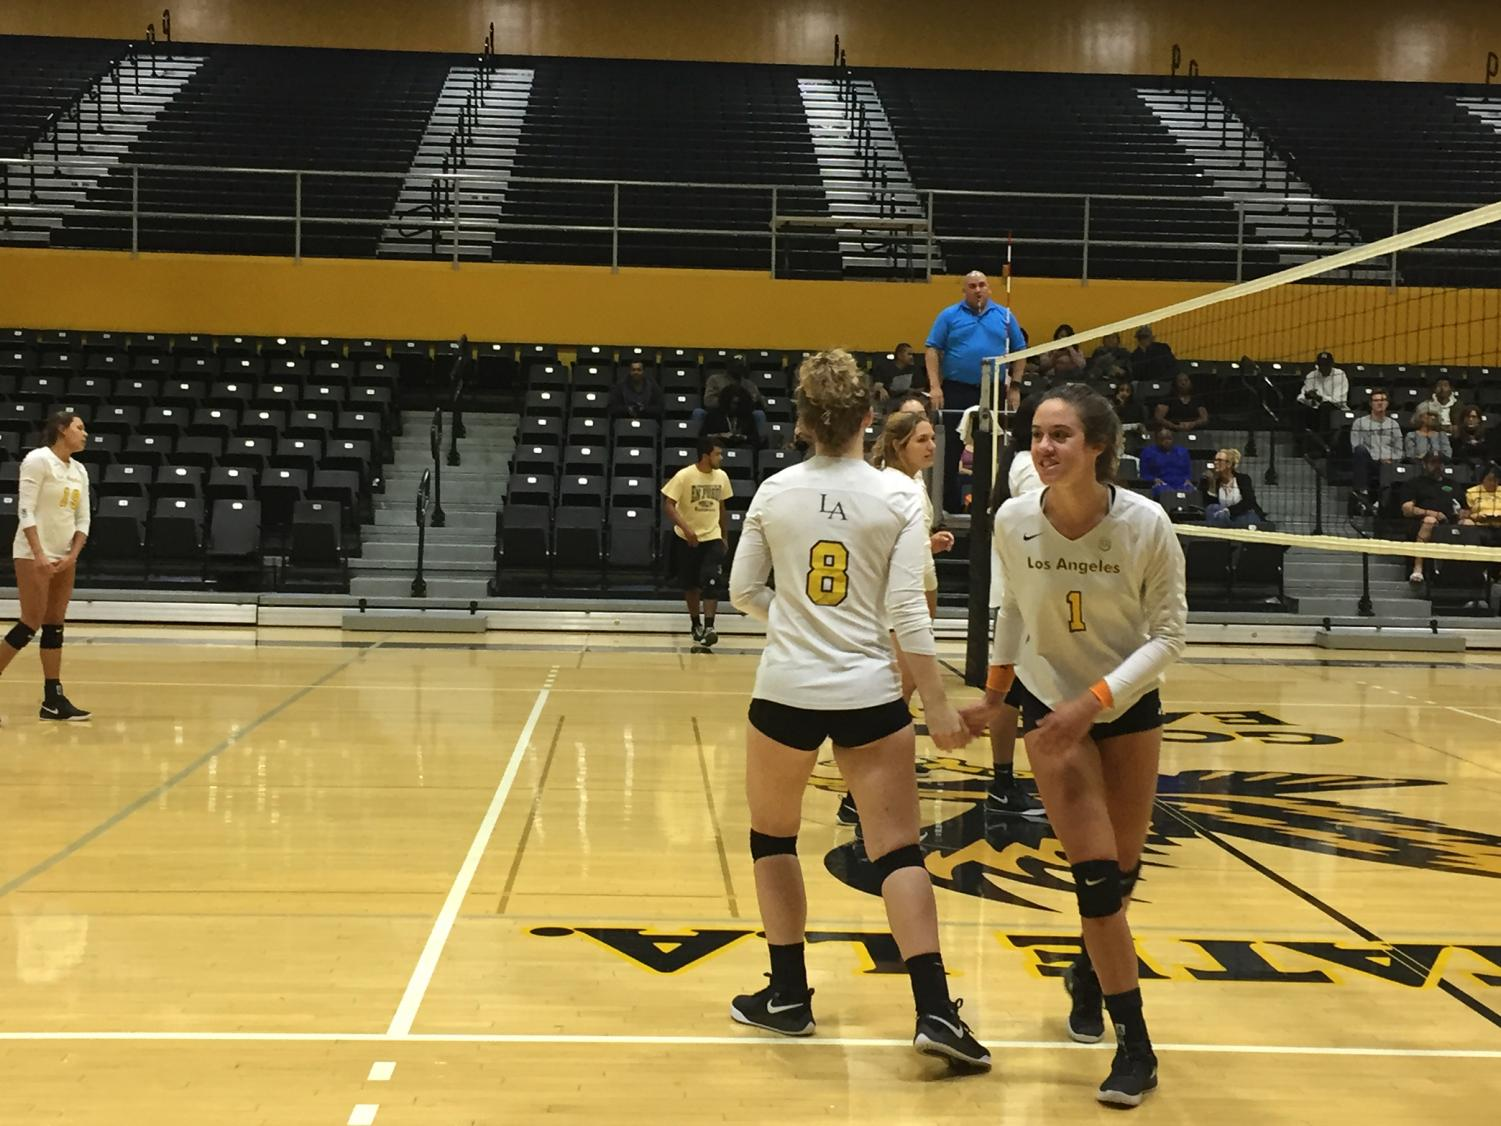 Cal State LA women's volleyball defeats Cal Poly Pomona in a home game of 3-2.